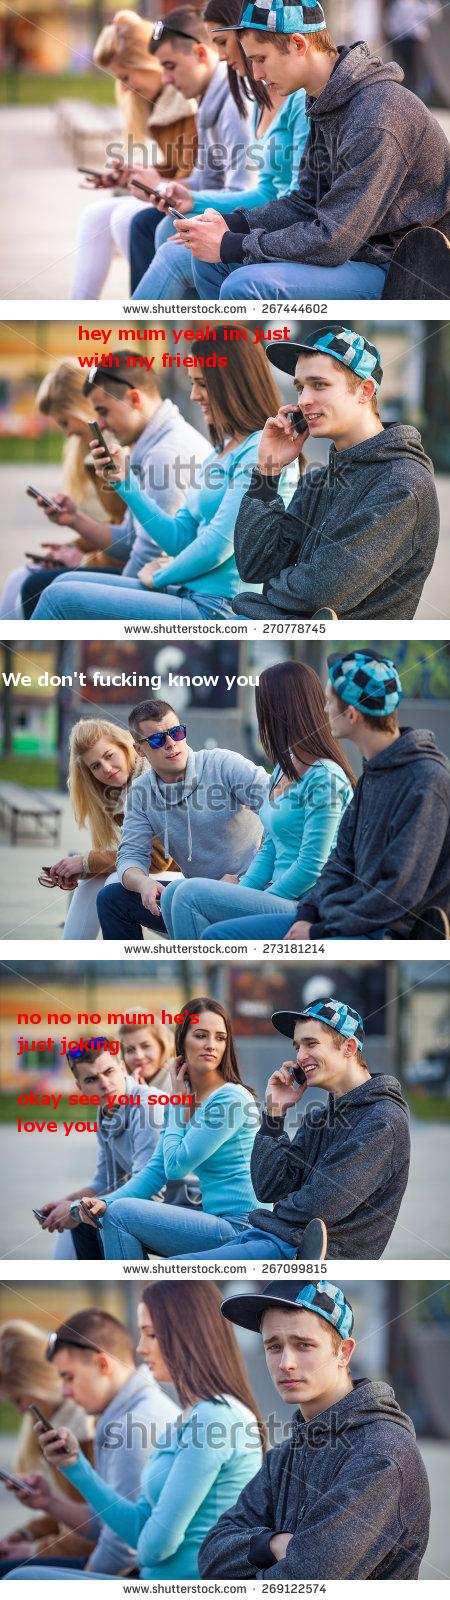 A guy is talking to him mom on a cell phone and tells her that he's with his friends but really he's just sitting next to some strangers. The strangers retort his lies.